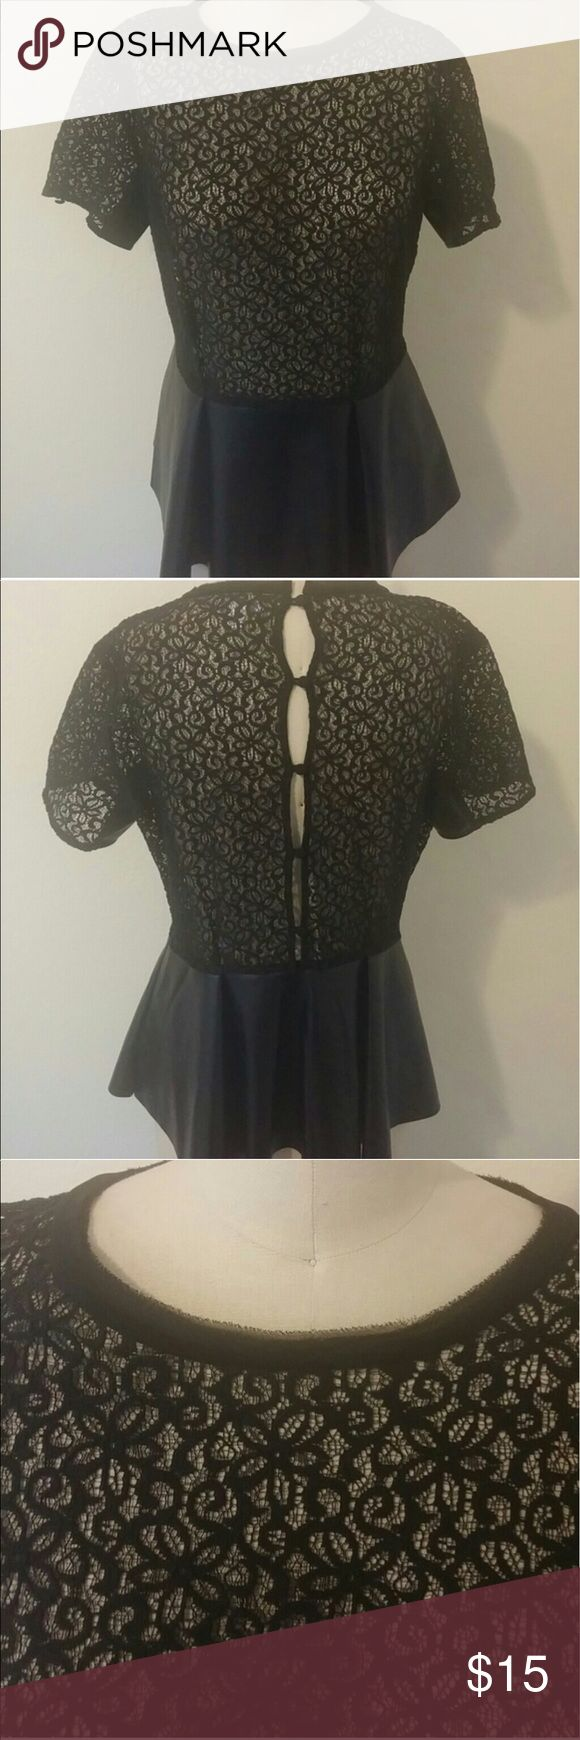 Bisou Bisou Lace & Faux Leather Peplum Top Bisou Bisou Lace Top with Faux Leather Peplum. Buttons down on the back and has a side zipper underarm (left side). Worn once, like new! Bisou Bisou Tops